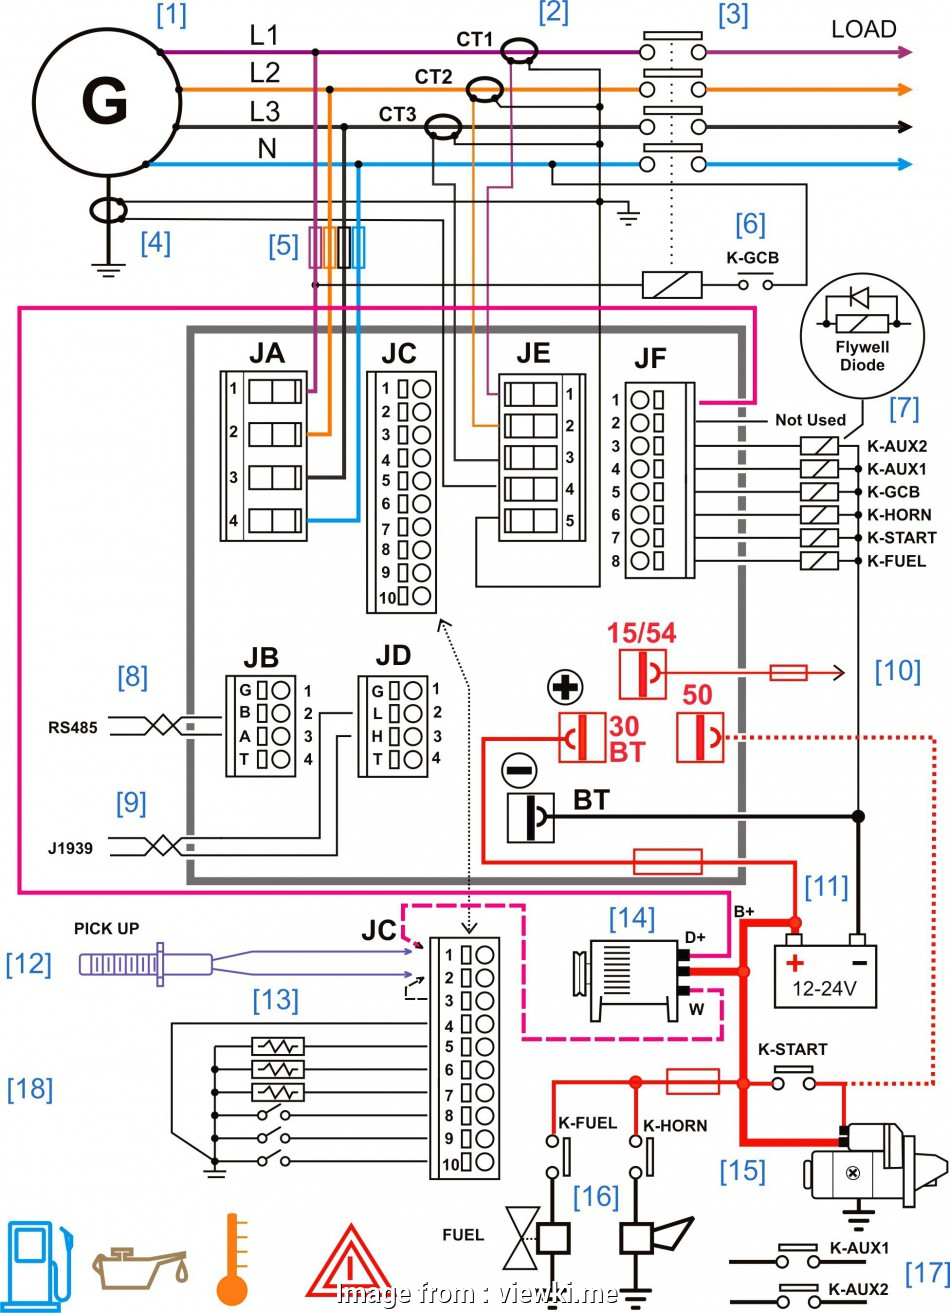 automotive electrical wiring diagram software Automotive Electrical Wiring Diagrams Elegant Diagram Software Auto Of Automotive Electrical Wiring Diagram Software Most Automotive Electrical Wiring Diagrams Elegant Diagram Software Auto Of Galleries